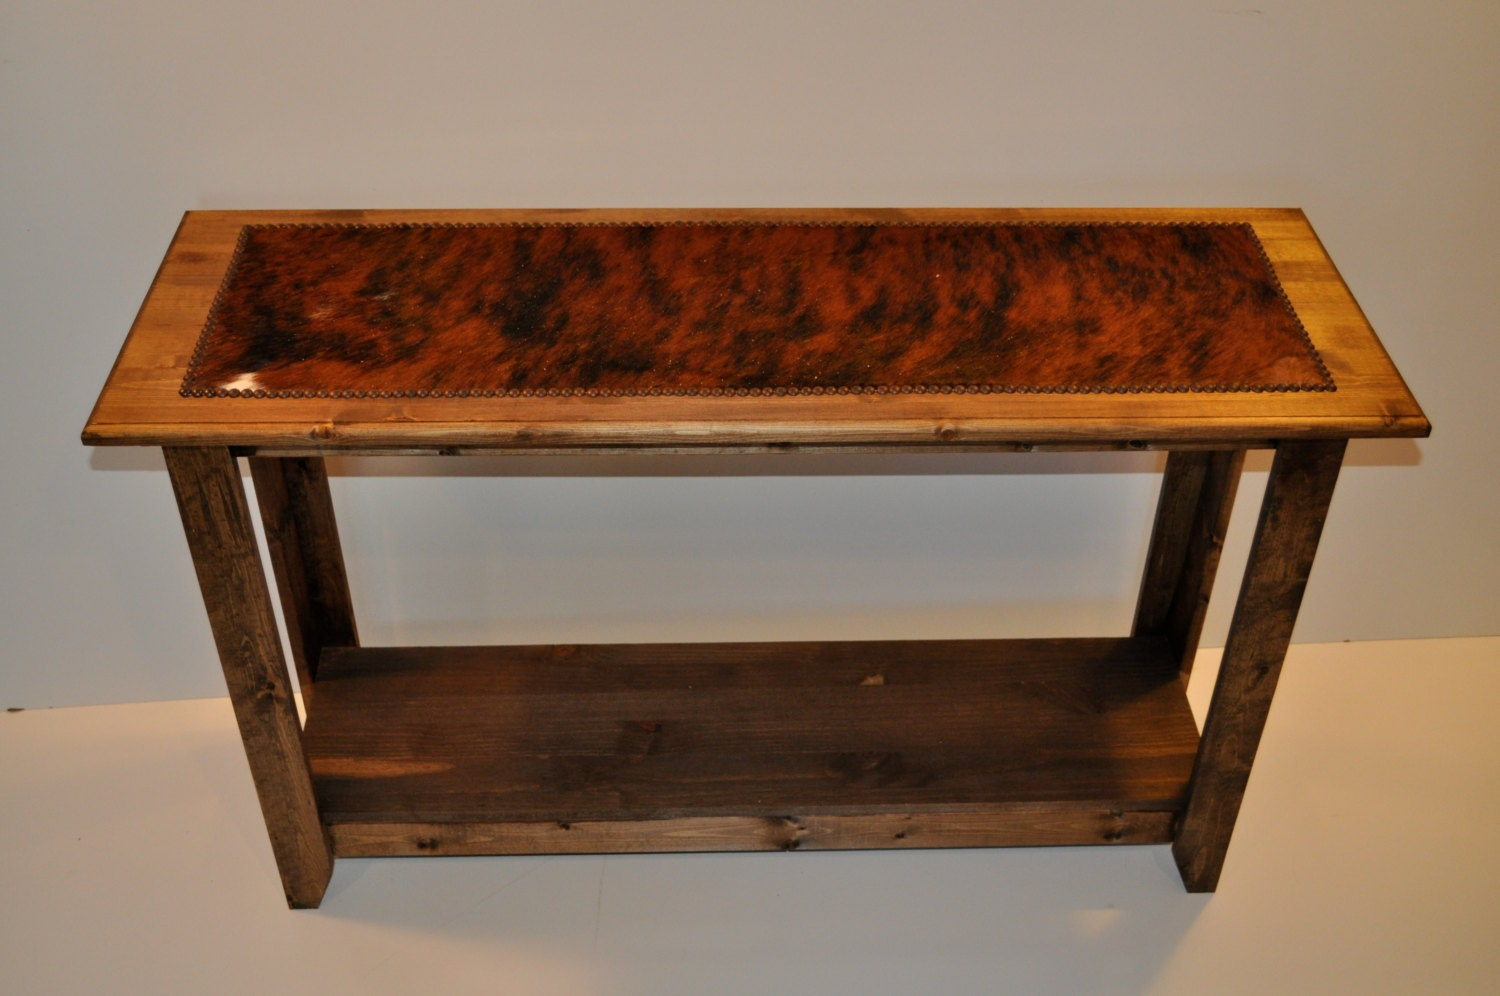 Western sofa table cowhide sofa table cowhide entryway details cowhide sofa table geotapseo Image collections